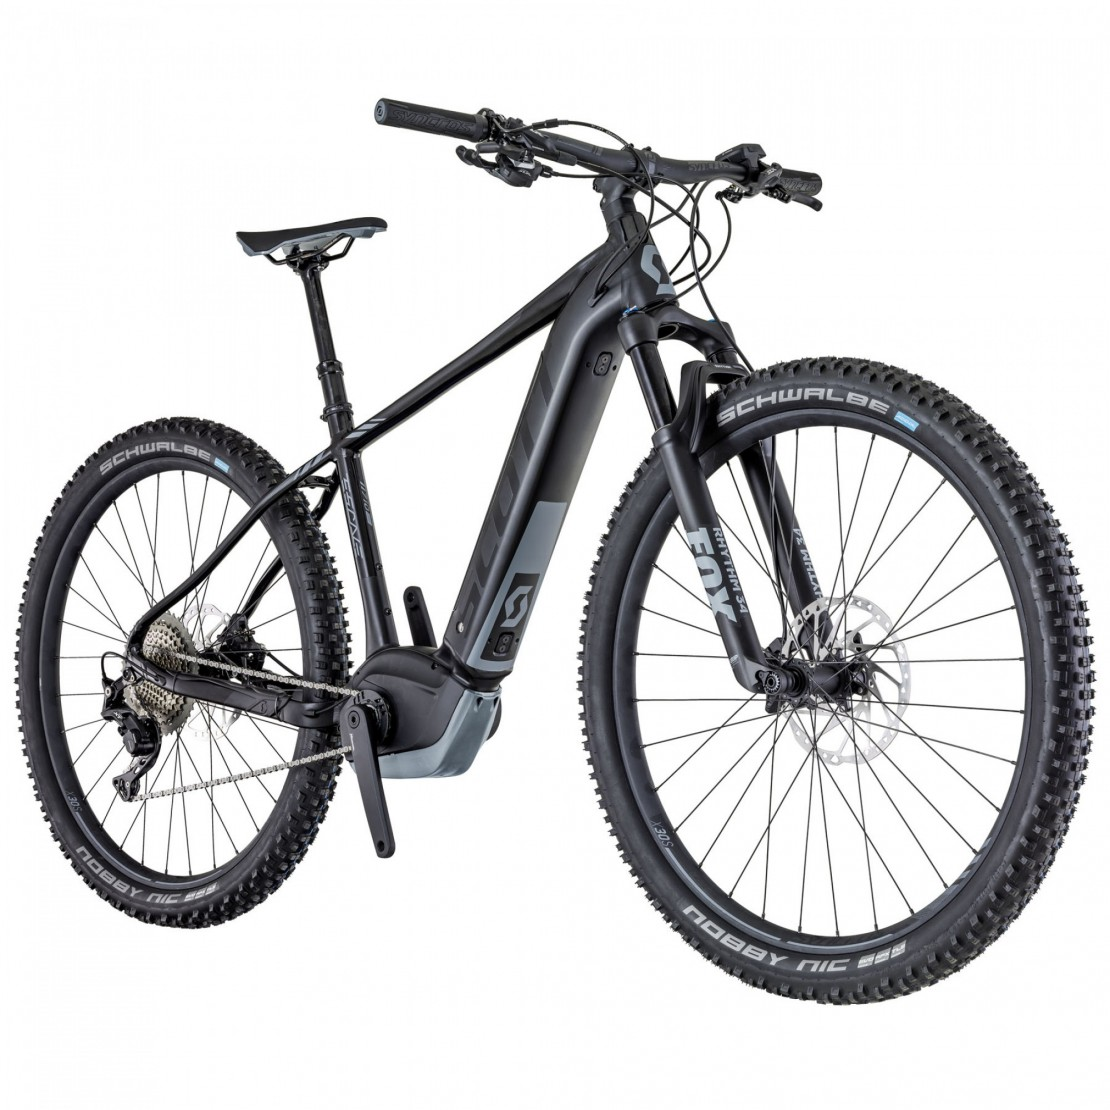 E-Scale 910, 2018 electric bike